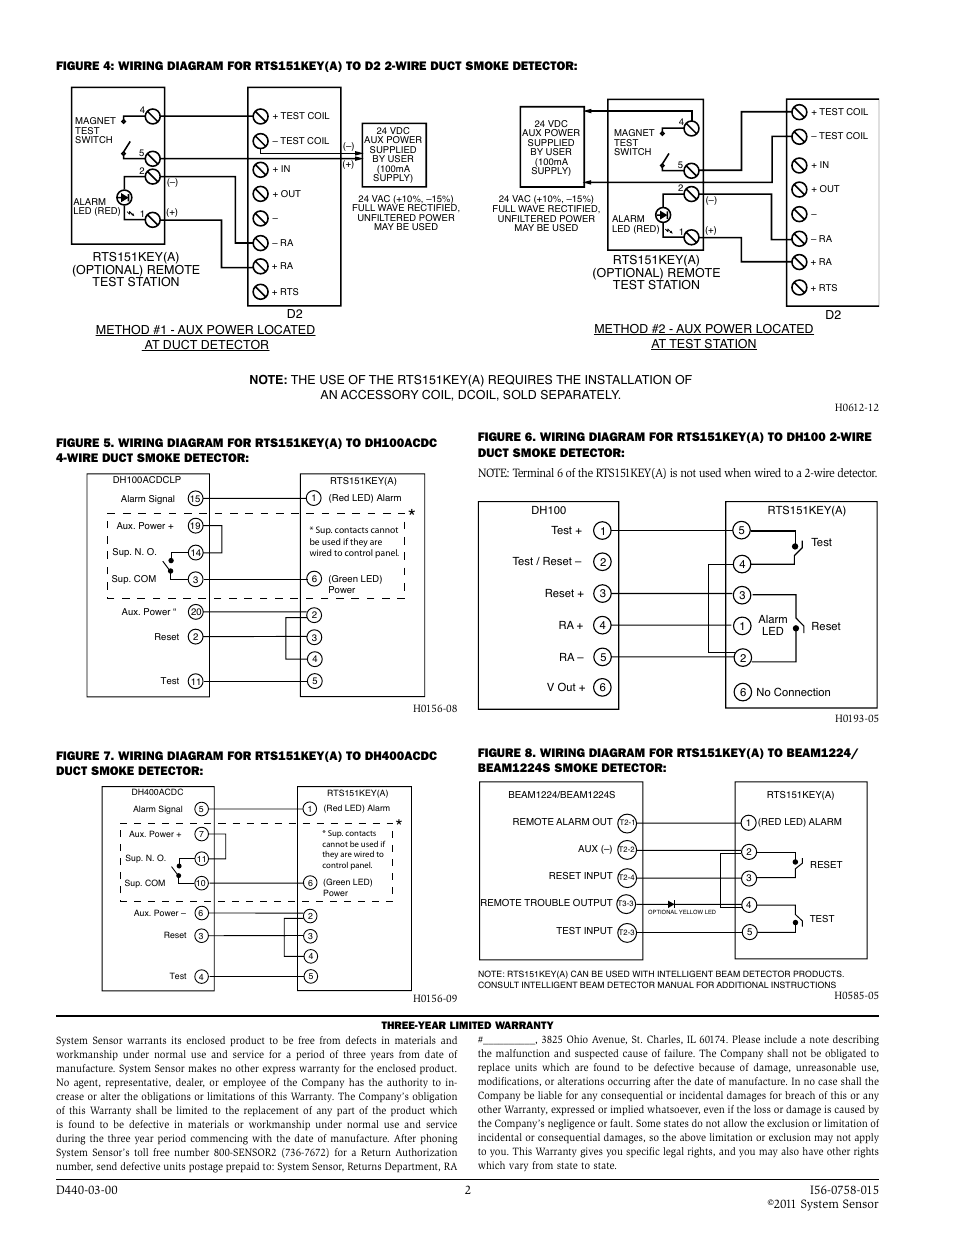 system sensor rts151key user manual page 2 2 also for rh manualsdir com system sensor dnr wiring diagram system sensor d2 wiring diagram